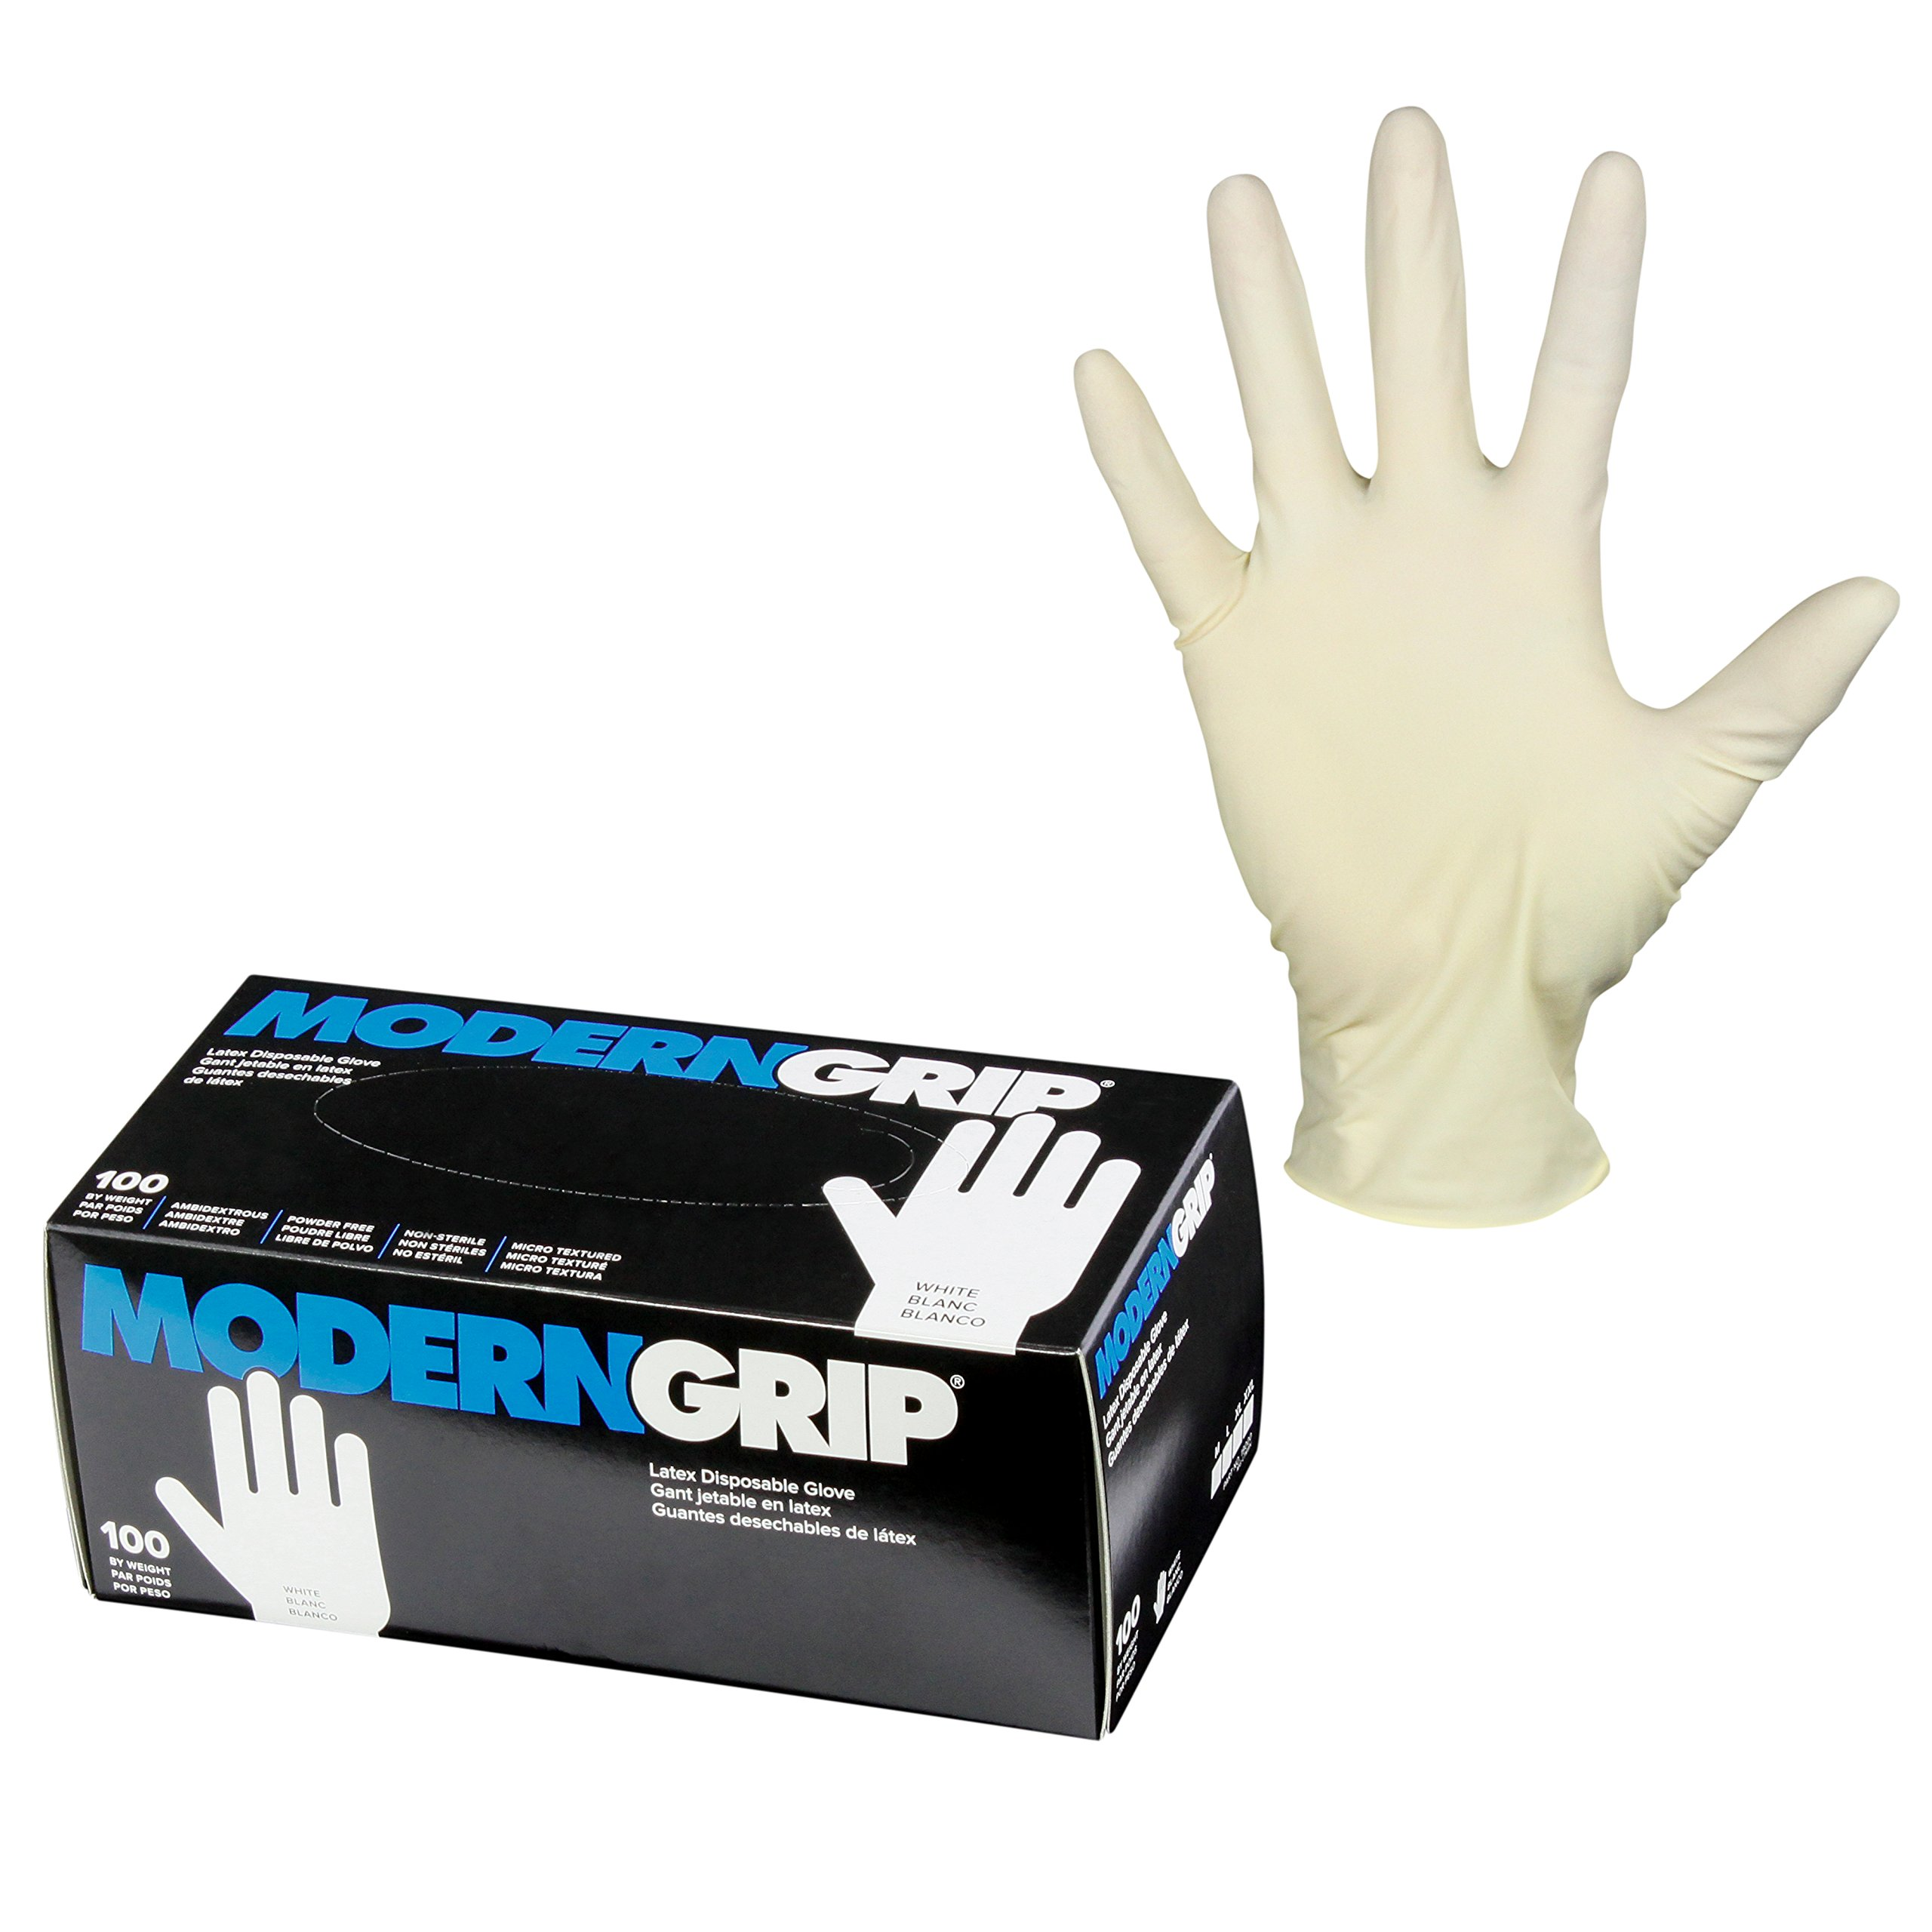 Modern Grip 19000-XL Latex 9 mil Thickness Heavy Duty Disposable Gloves – Industrial and Household - Powder Free - Natural White - X-Large (100 count) by Modern Grip (Image #1)